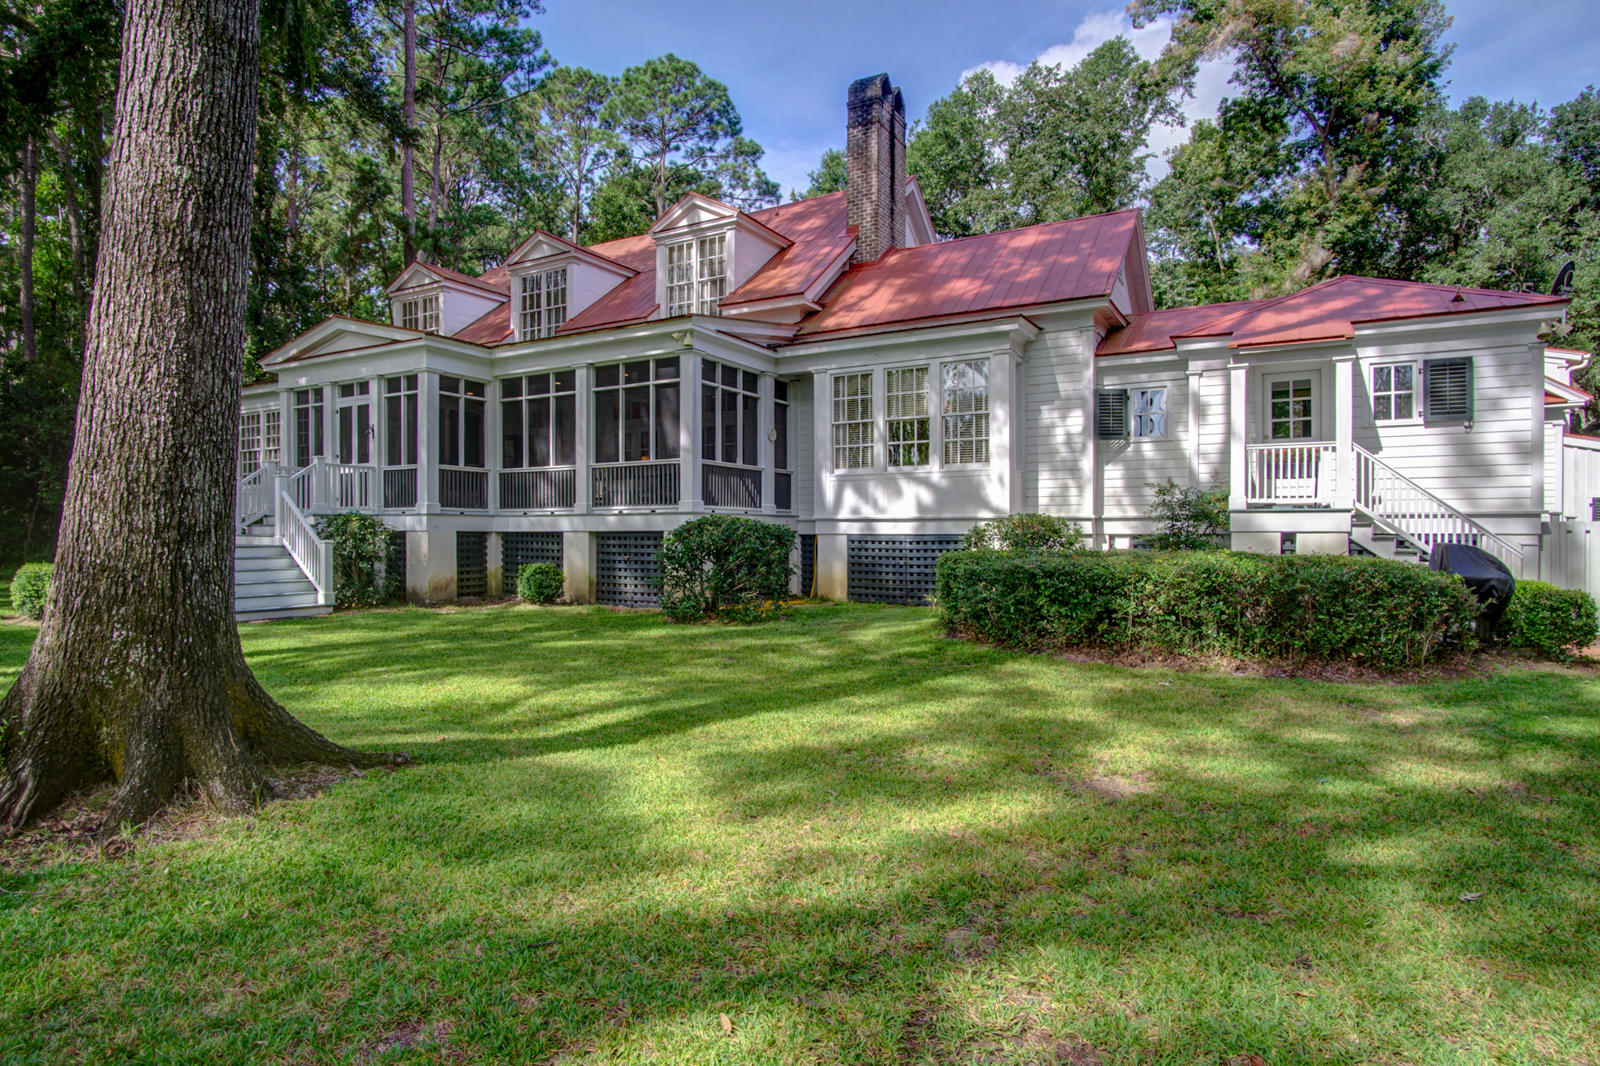 Bull Point Plantation Homes For Sale - 123 Bull Point, Seabrook, SC - 52